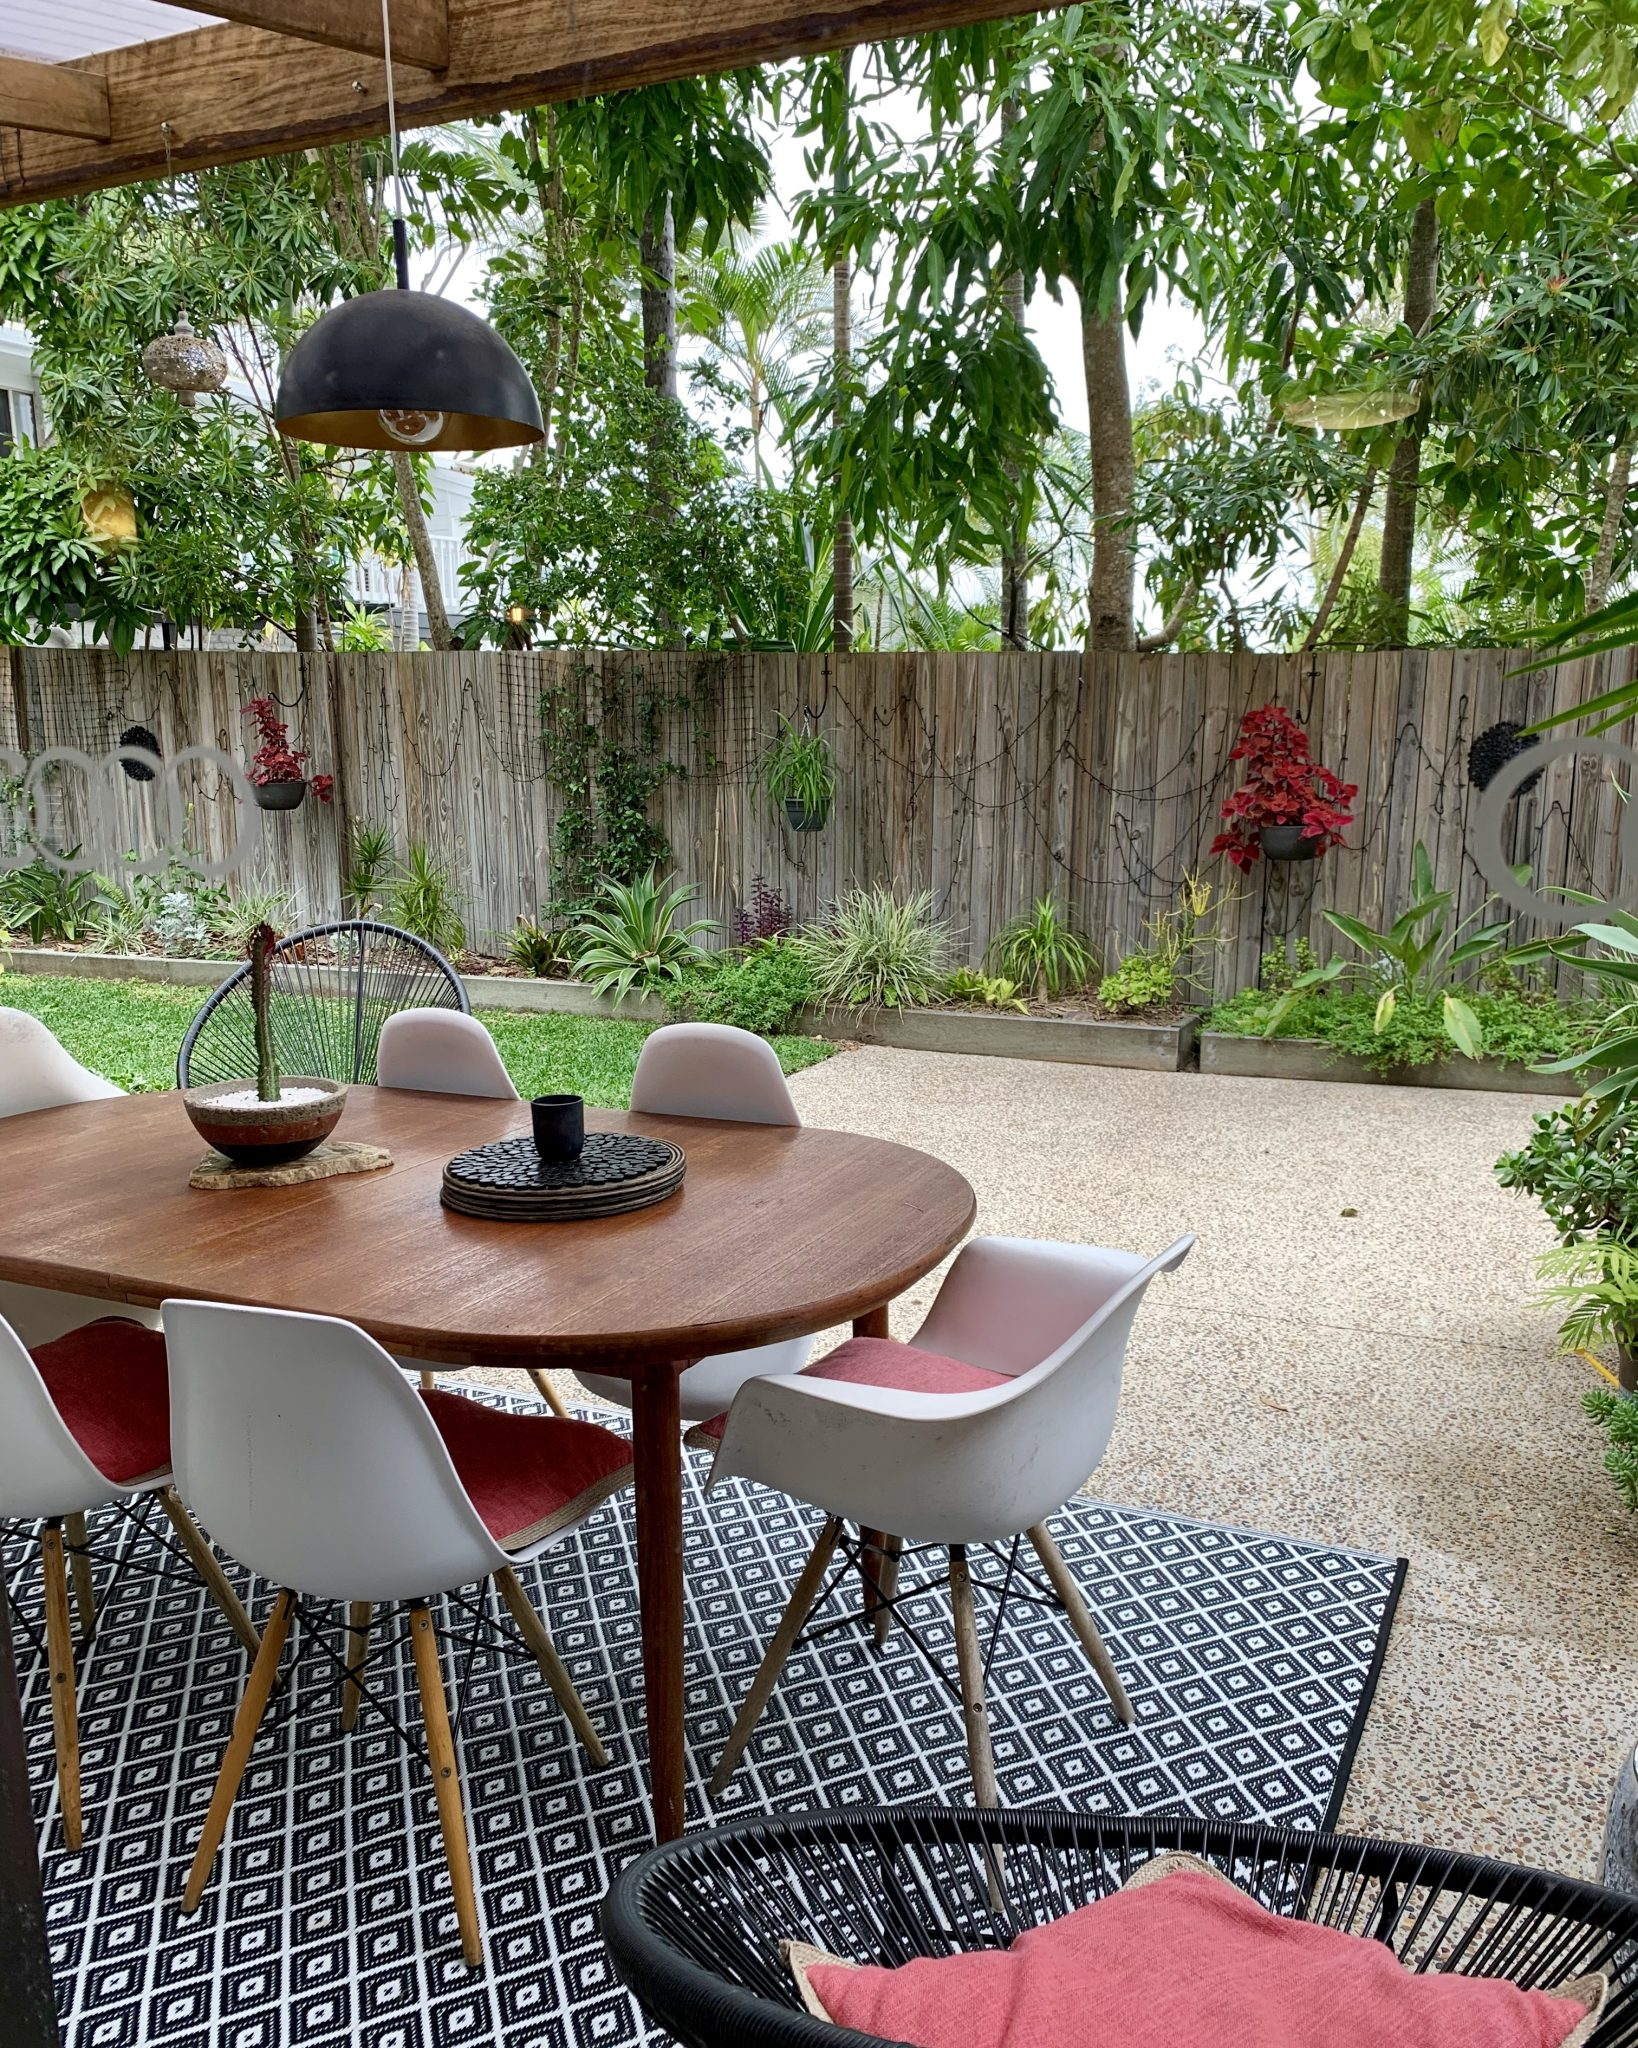 Outside area at our Airbnb in Noosa